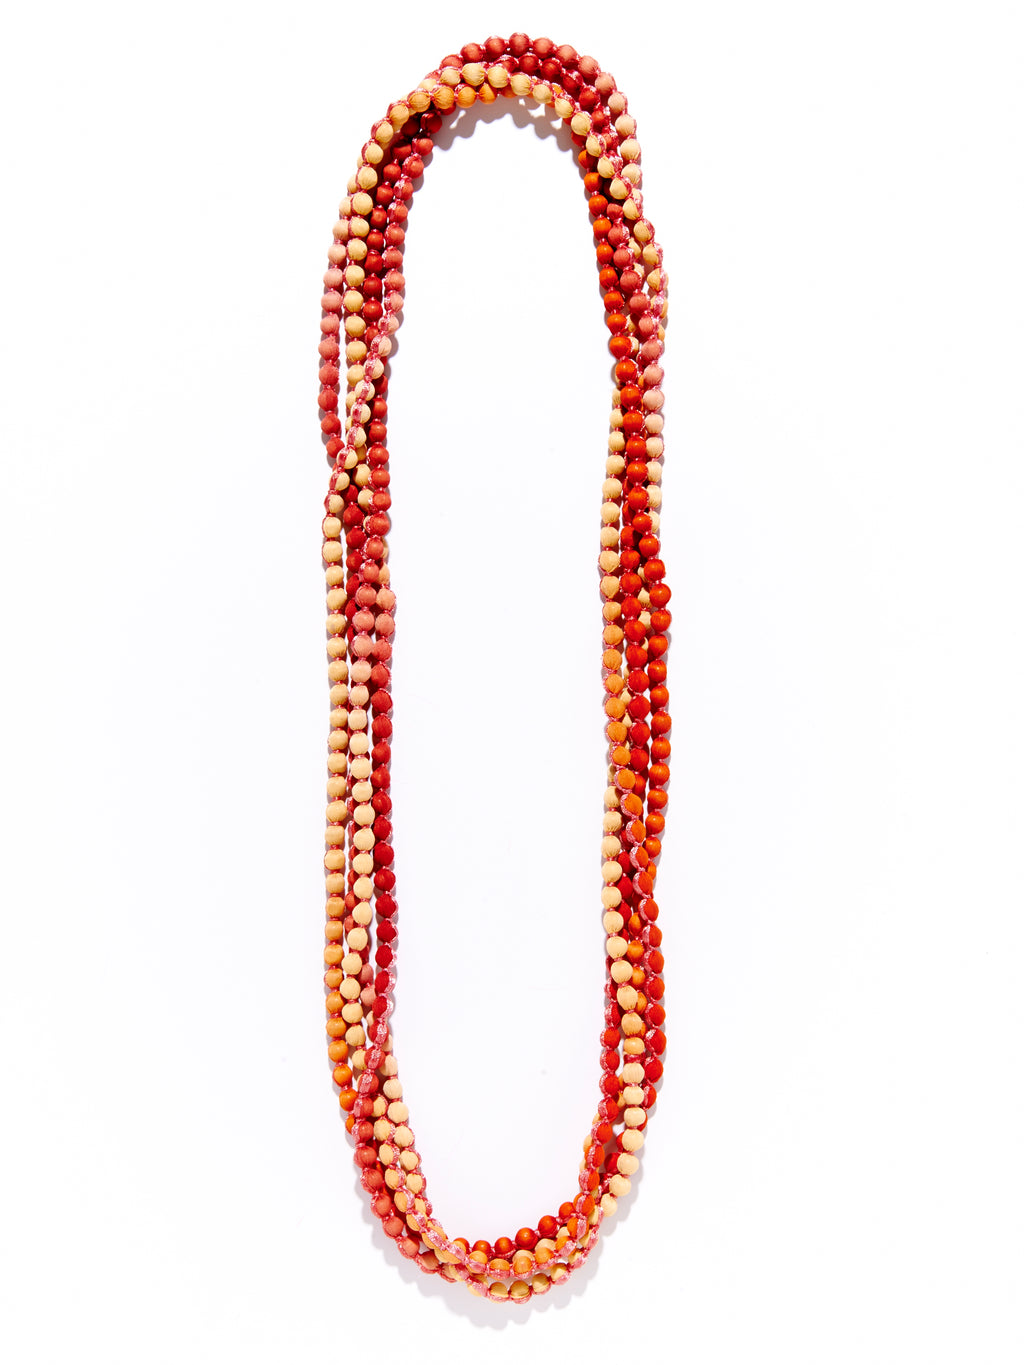 Roller Rabbit Gudli Necklace in Orange Ombre